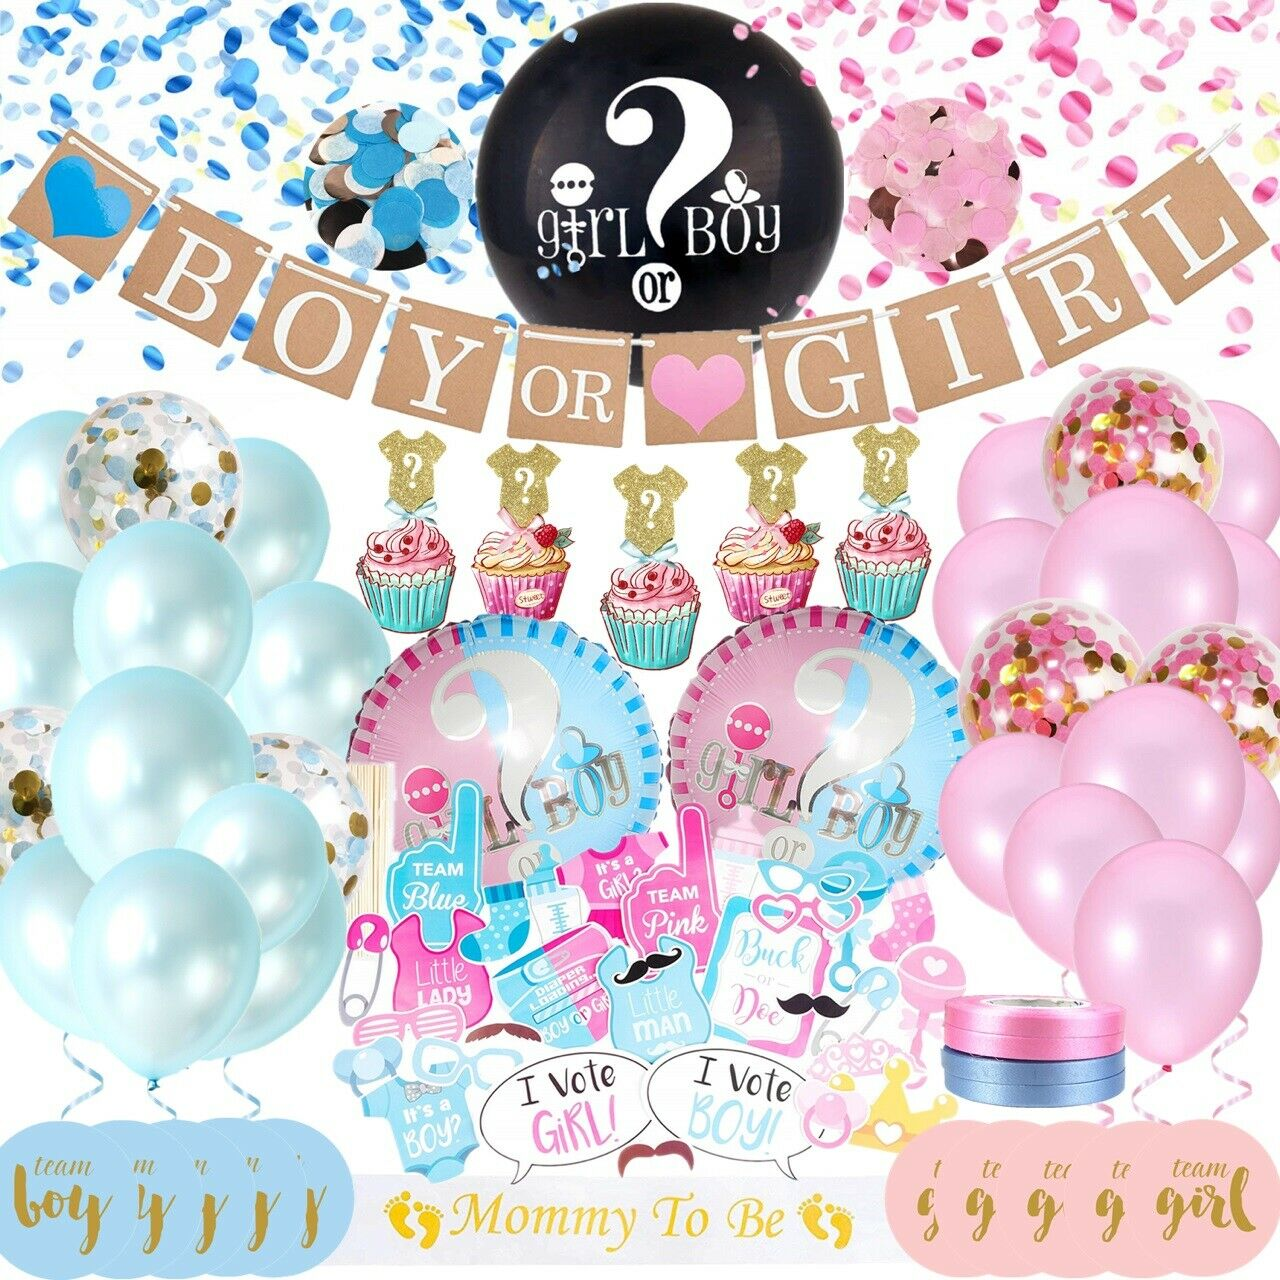 Gender Reveal Party Supplies Baby Shower Boy Or Girl Kit 72pc Balloons Decor Set For Sale Online Ebay,Funny Animal Cartoon Pictures For Kids